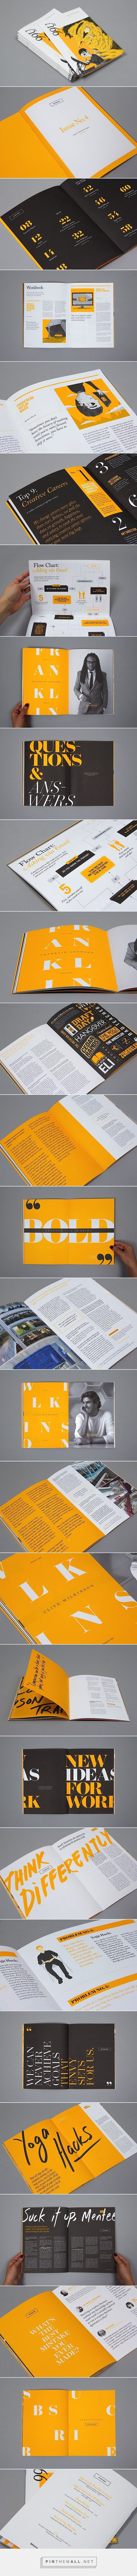 Editorial Design Inspiration: 99U Quarterly Mag No.4 | Abduzeedo Design Inspiration - created via http://pinthemall.net